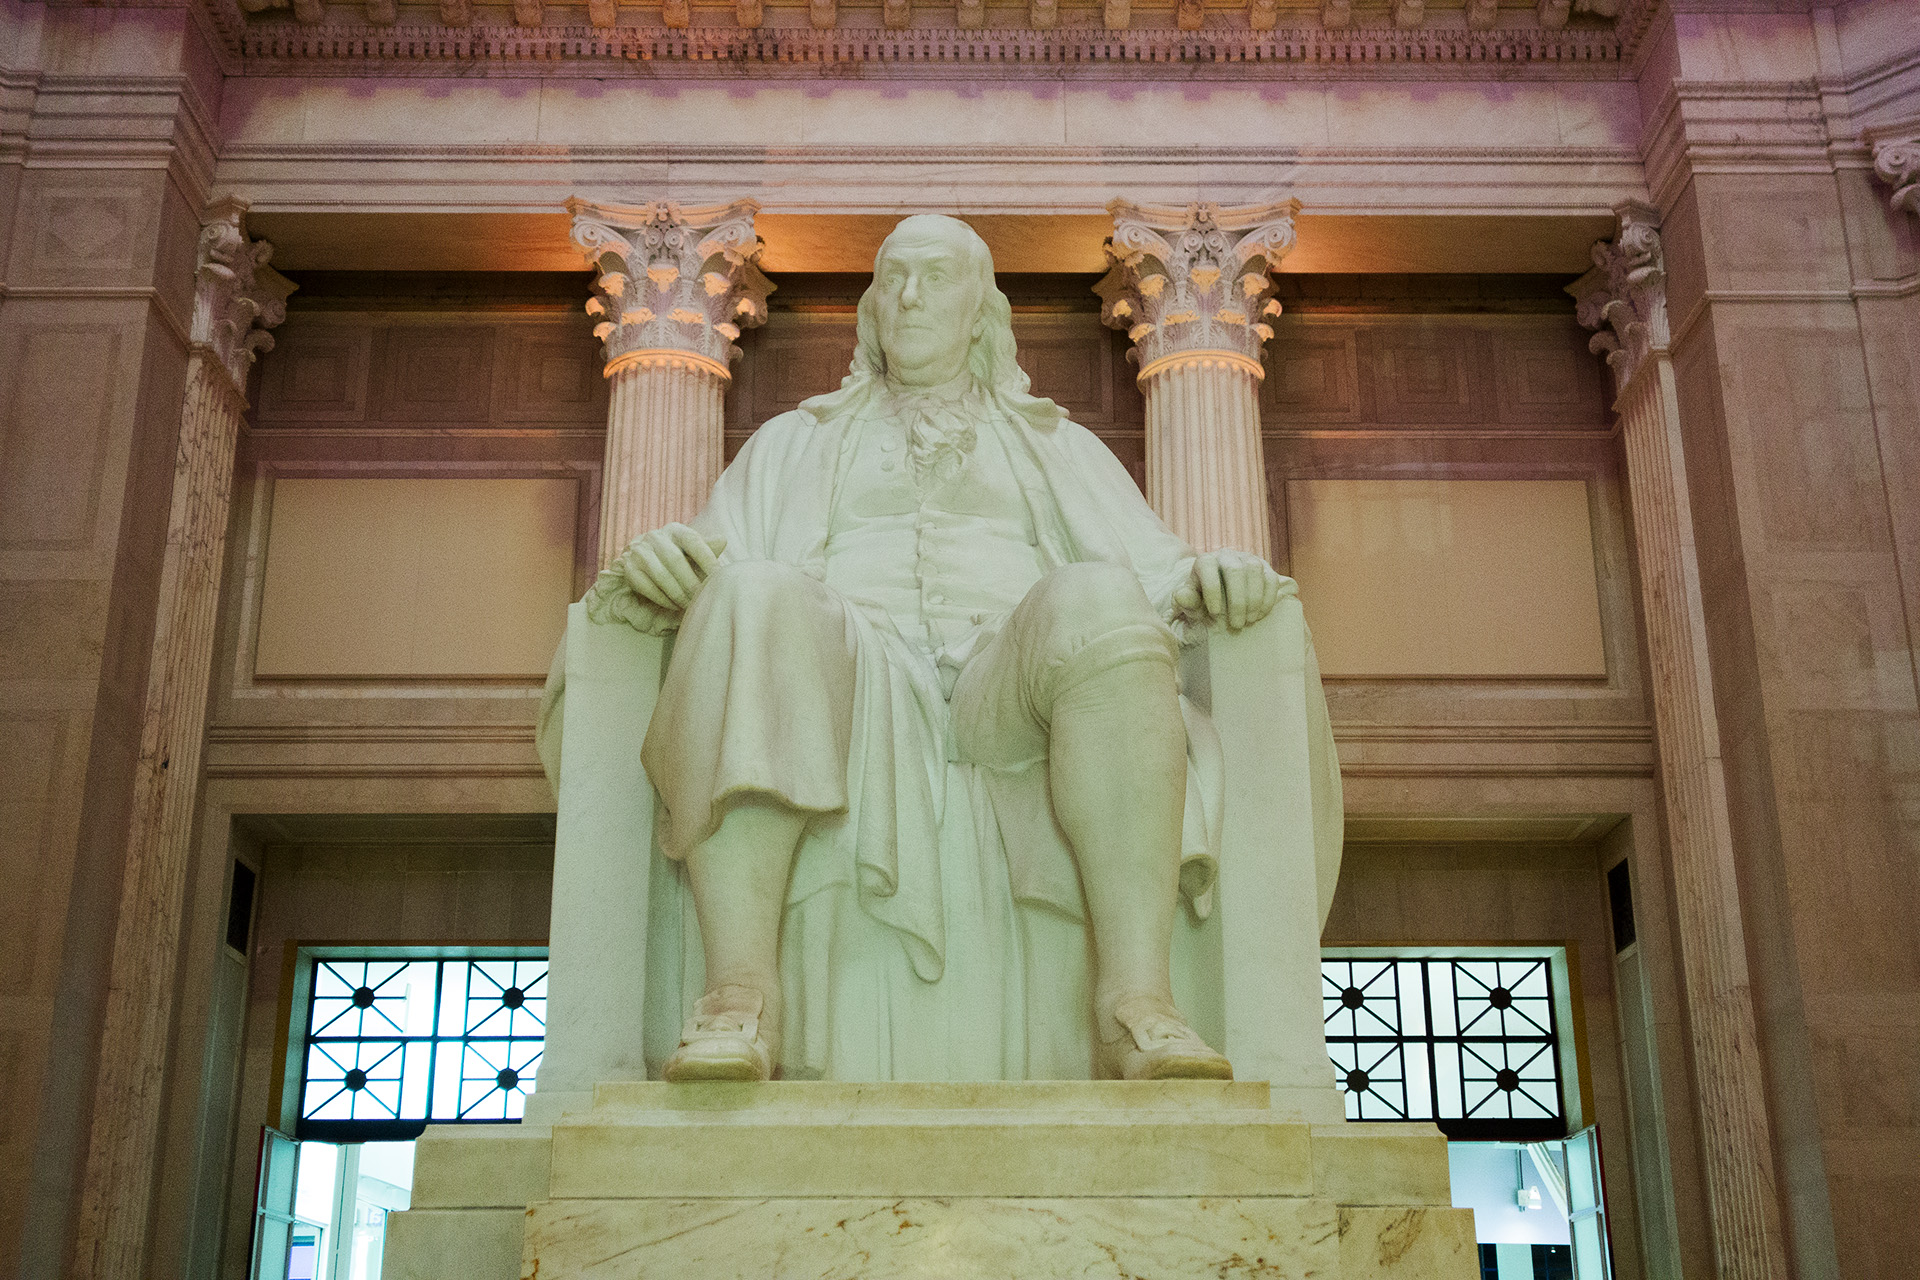 Benjamin Franklin Statue in the Franklin Institute.